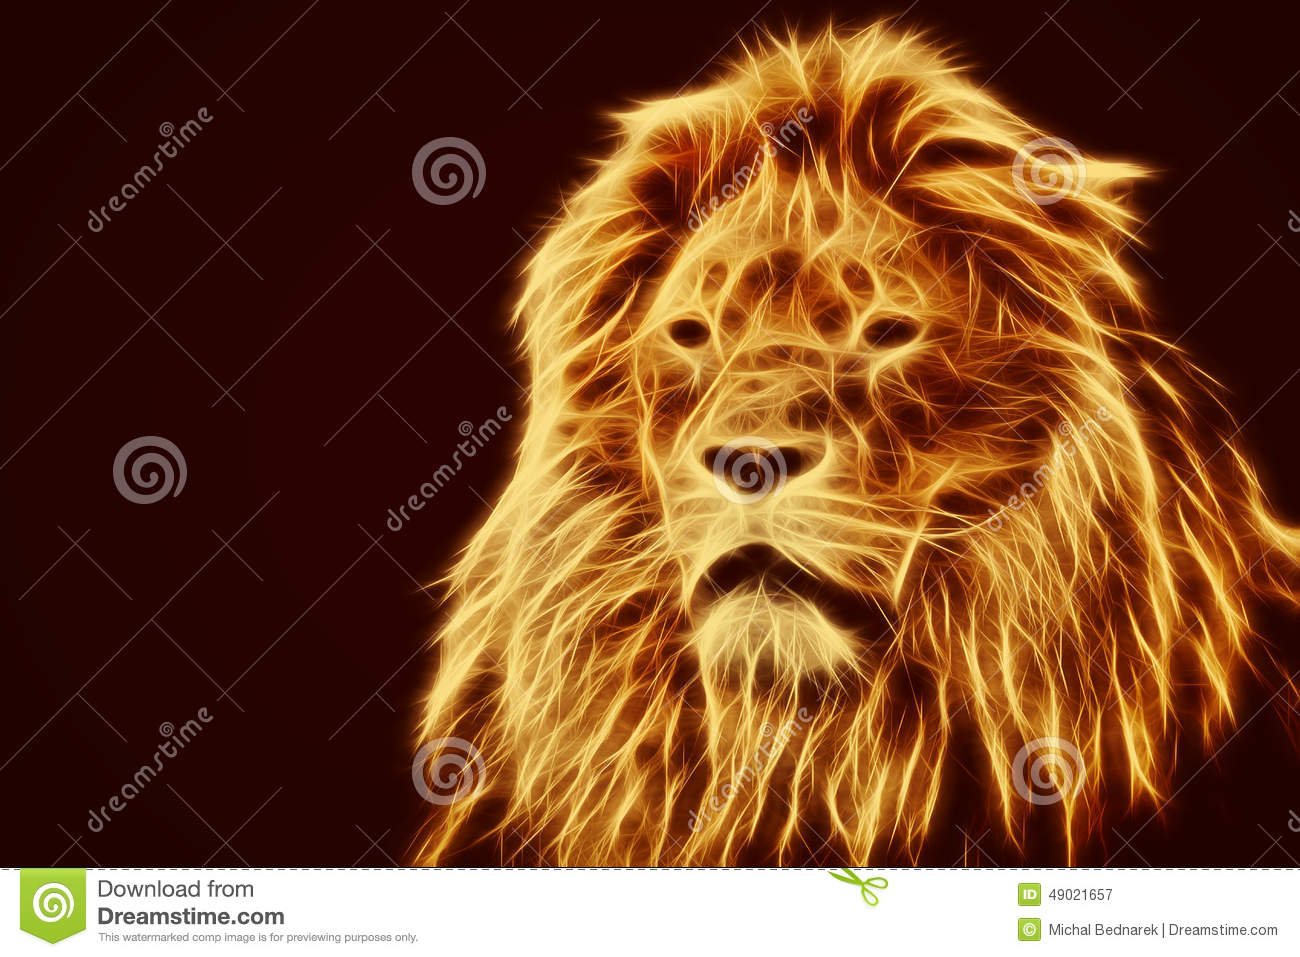 ... Artistic Lion Portrait. Fire Flames Fur Stock Photo - Image: 49021657